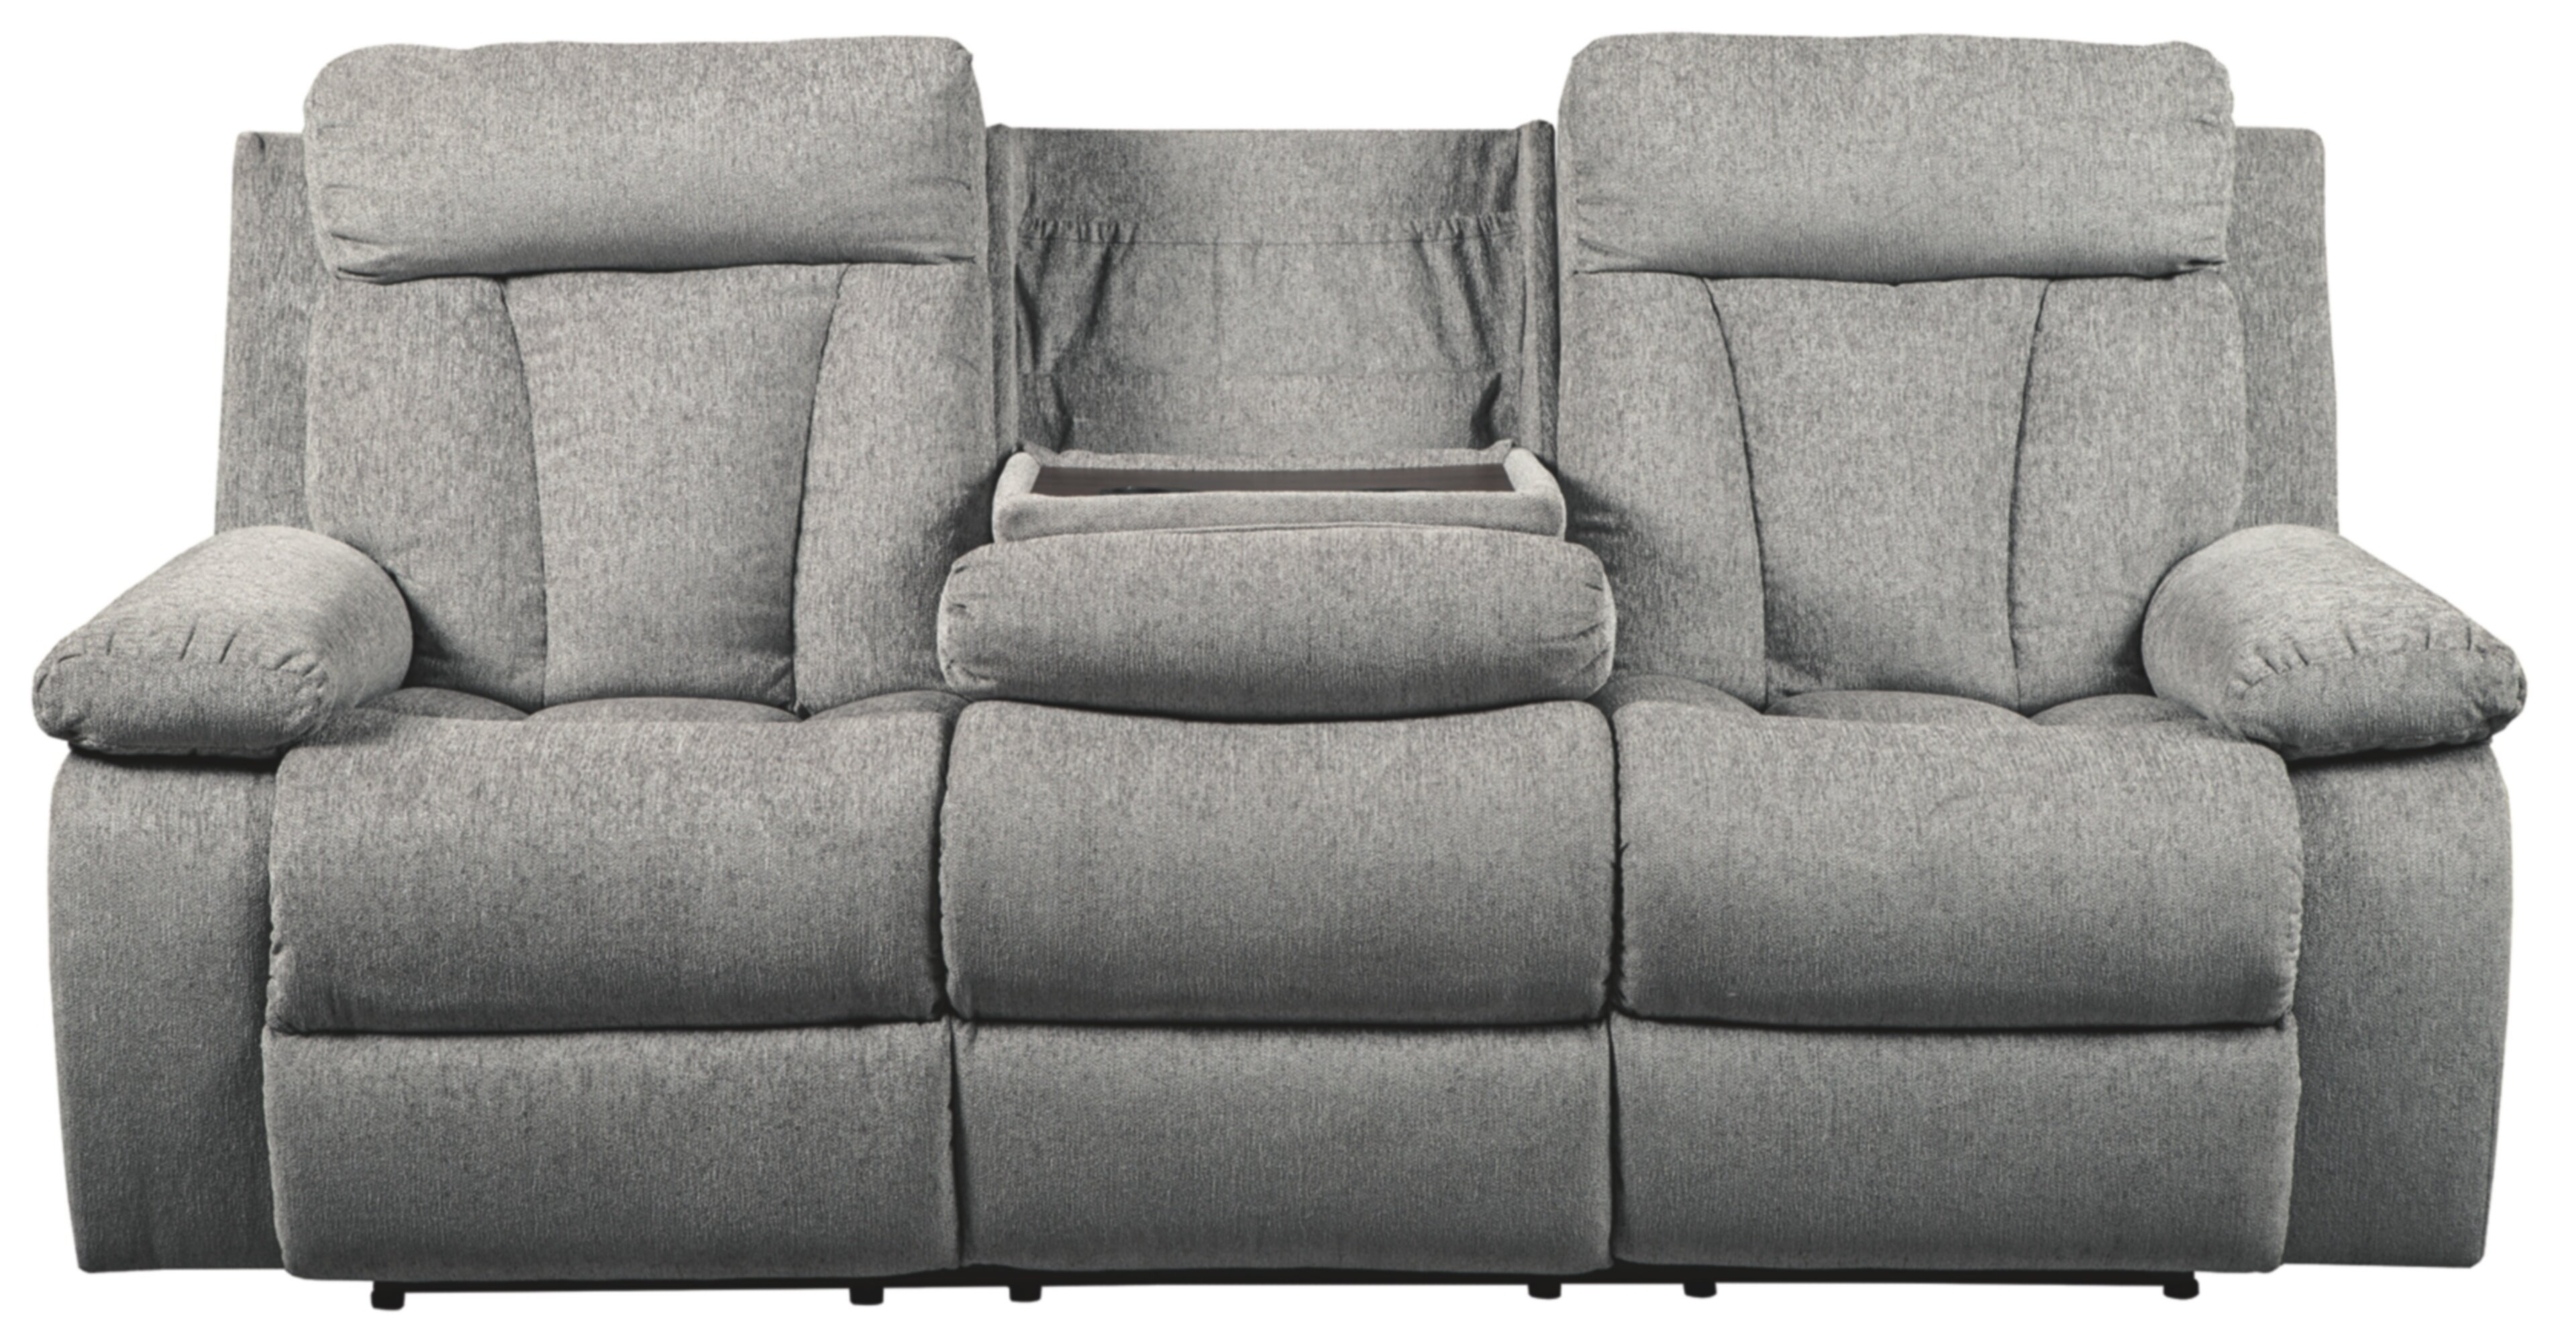 Reclining Sofa With Drop Down Table You Ll Love In 2020 Visualhunt